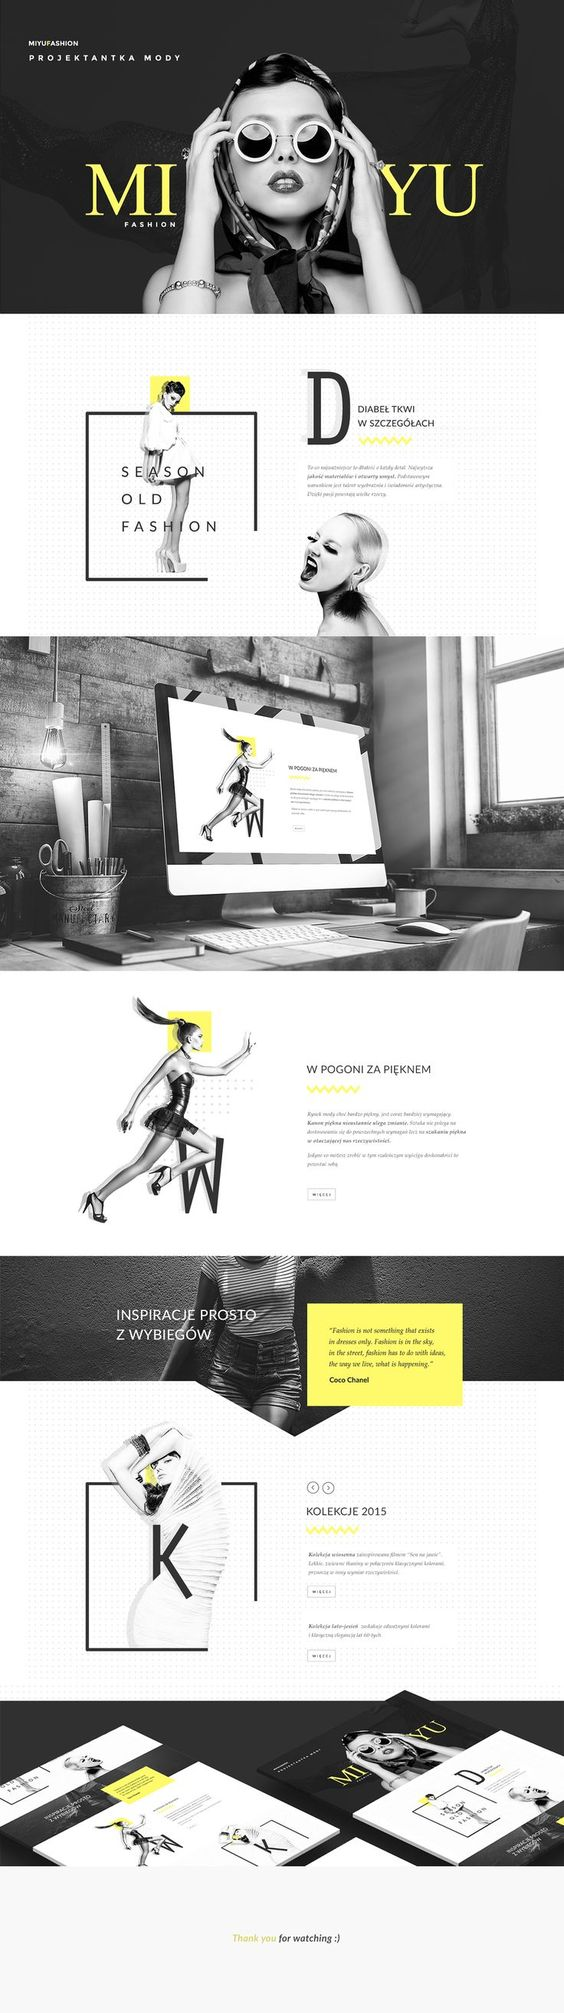 black white website collection consultation get i m a big fan of the black and white a dash of yellow color scheme these pages do a good job of getting their ideas across